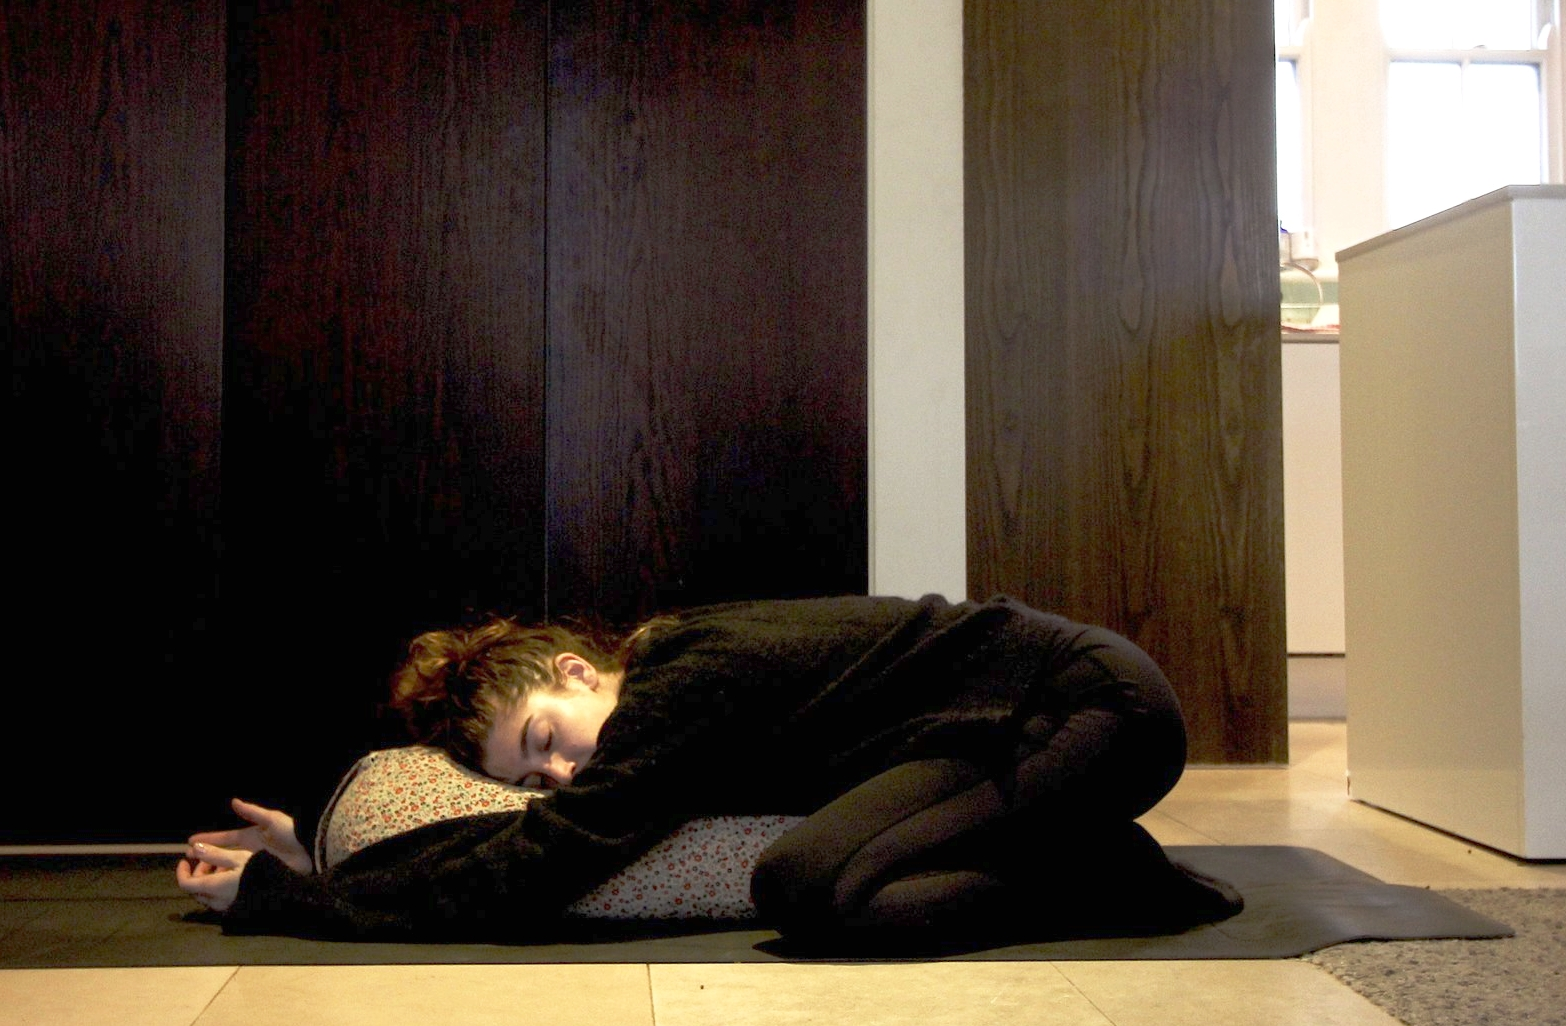 CHILDS POSE  - Bring big toes to touch and knees wide  - Lie on bolster either with face down or facing one way. Make sure to change the turn of the head half way through. If you don't have a bolster you can stack pillows.  - Focus on breath and sensation  - Hold for 5 plus minutes